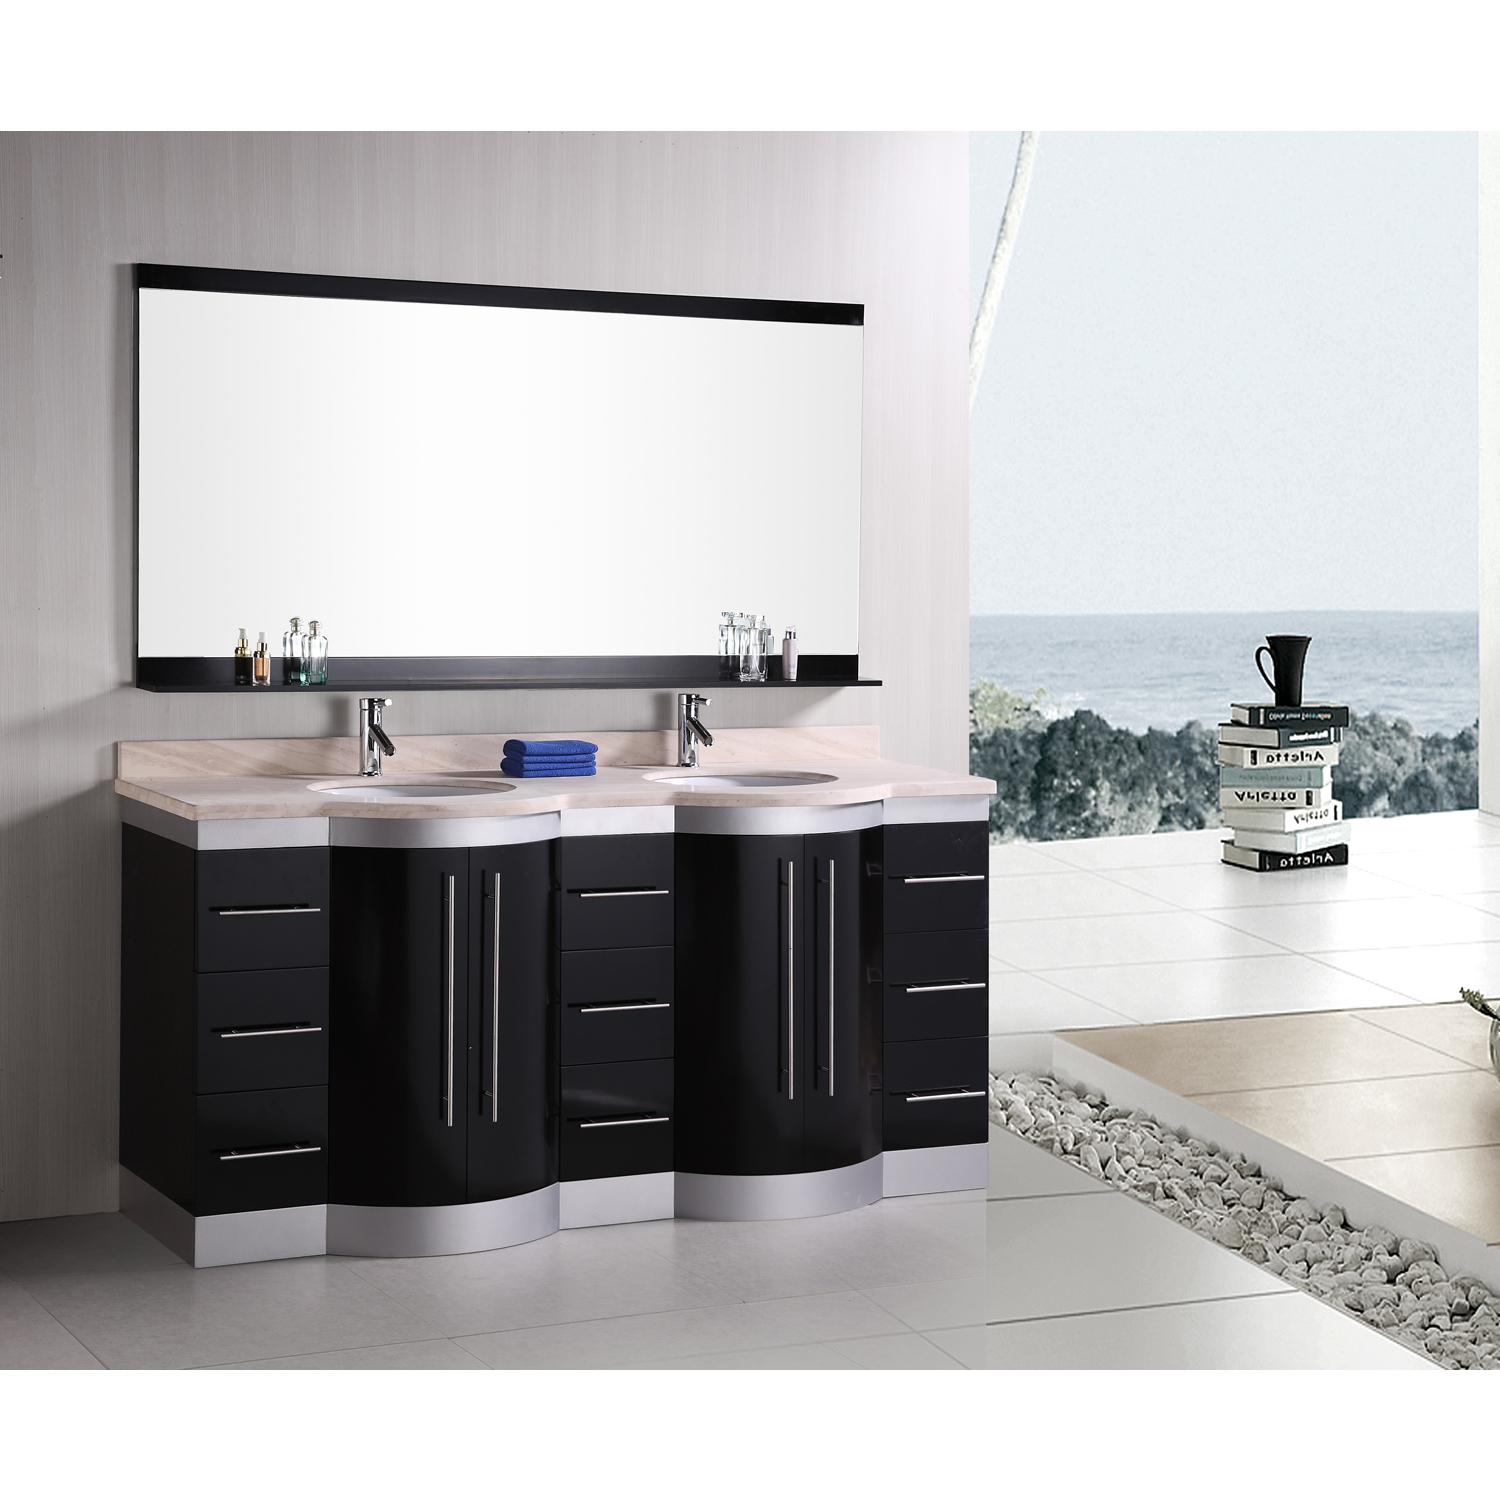 A Style Guide on How to Design a Black And White Bathroom Introduced by HomeT